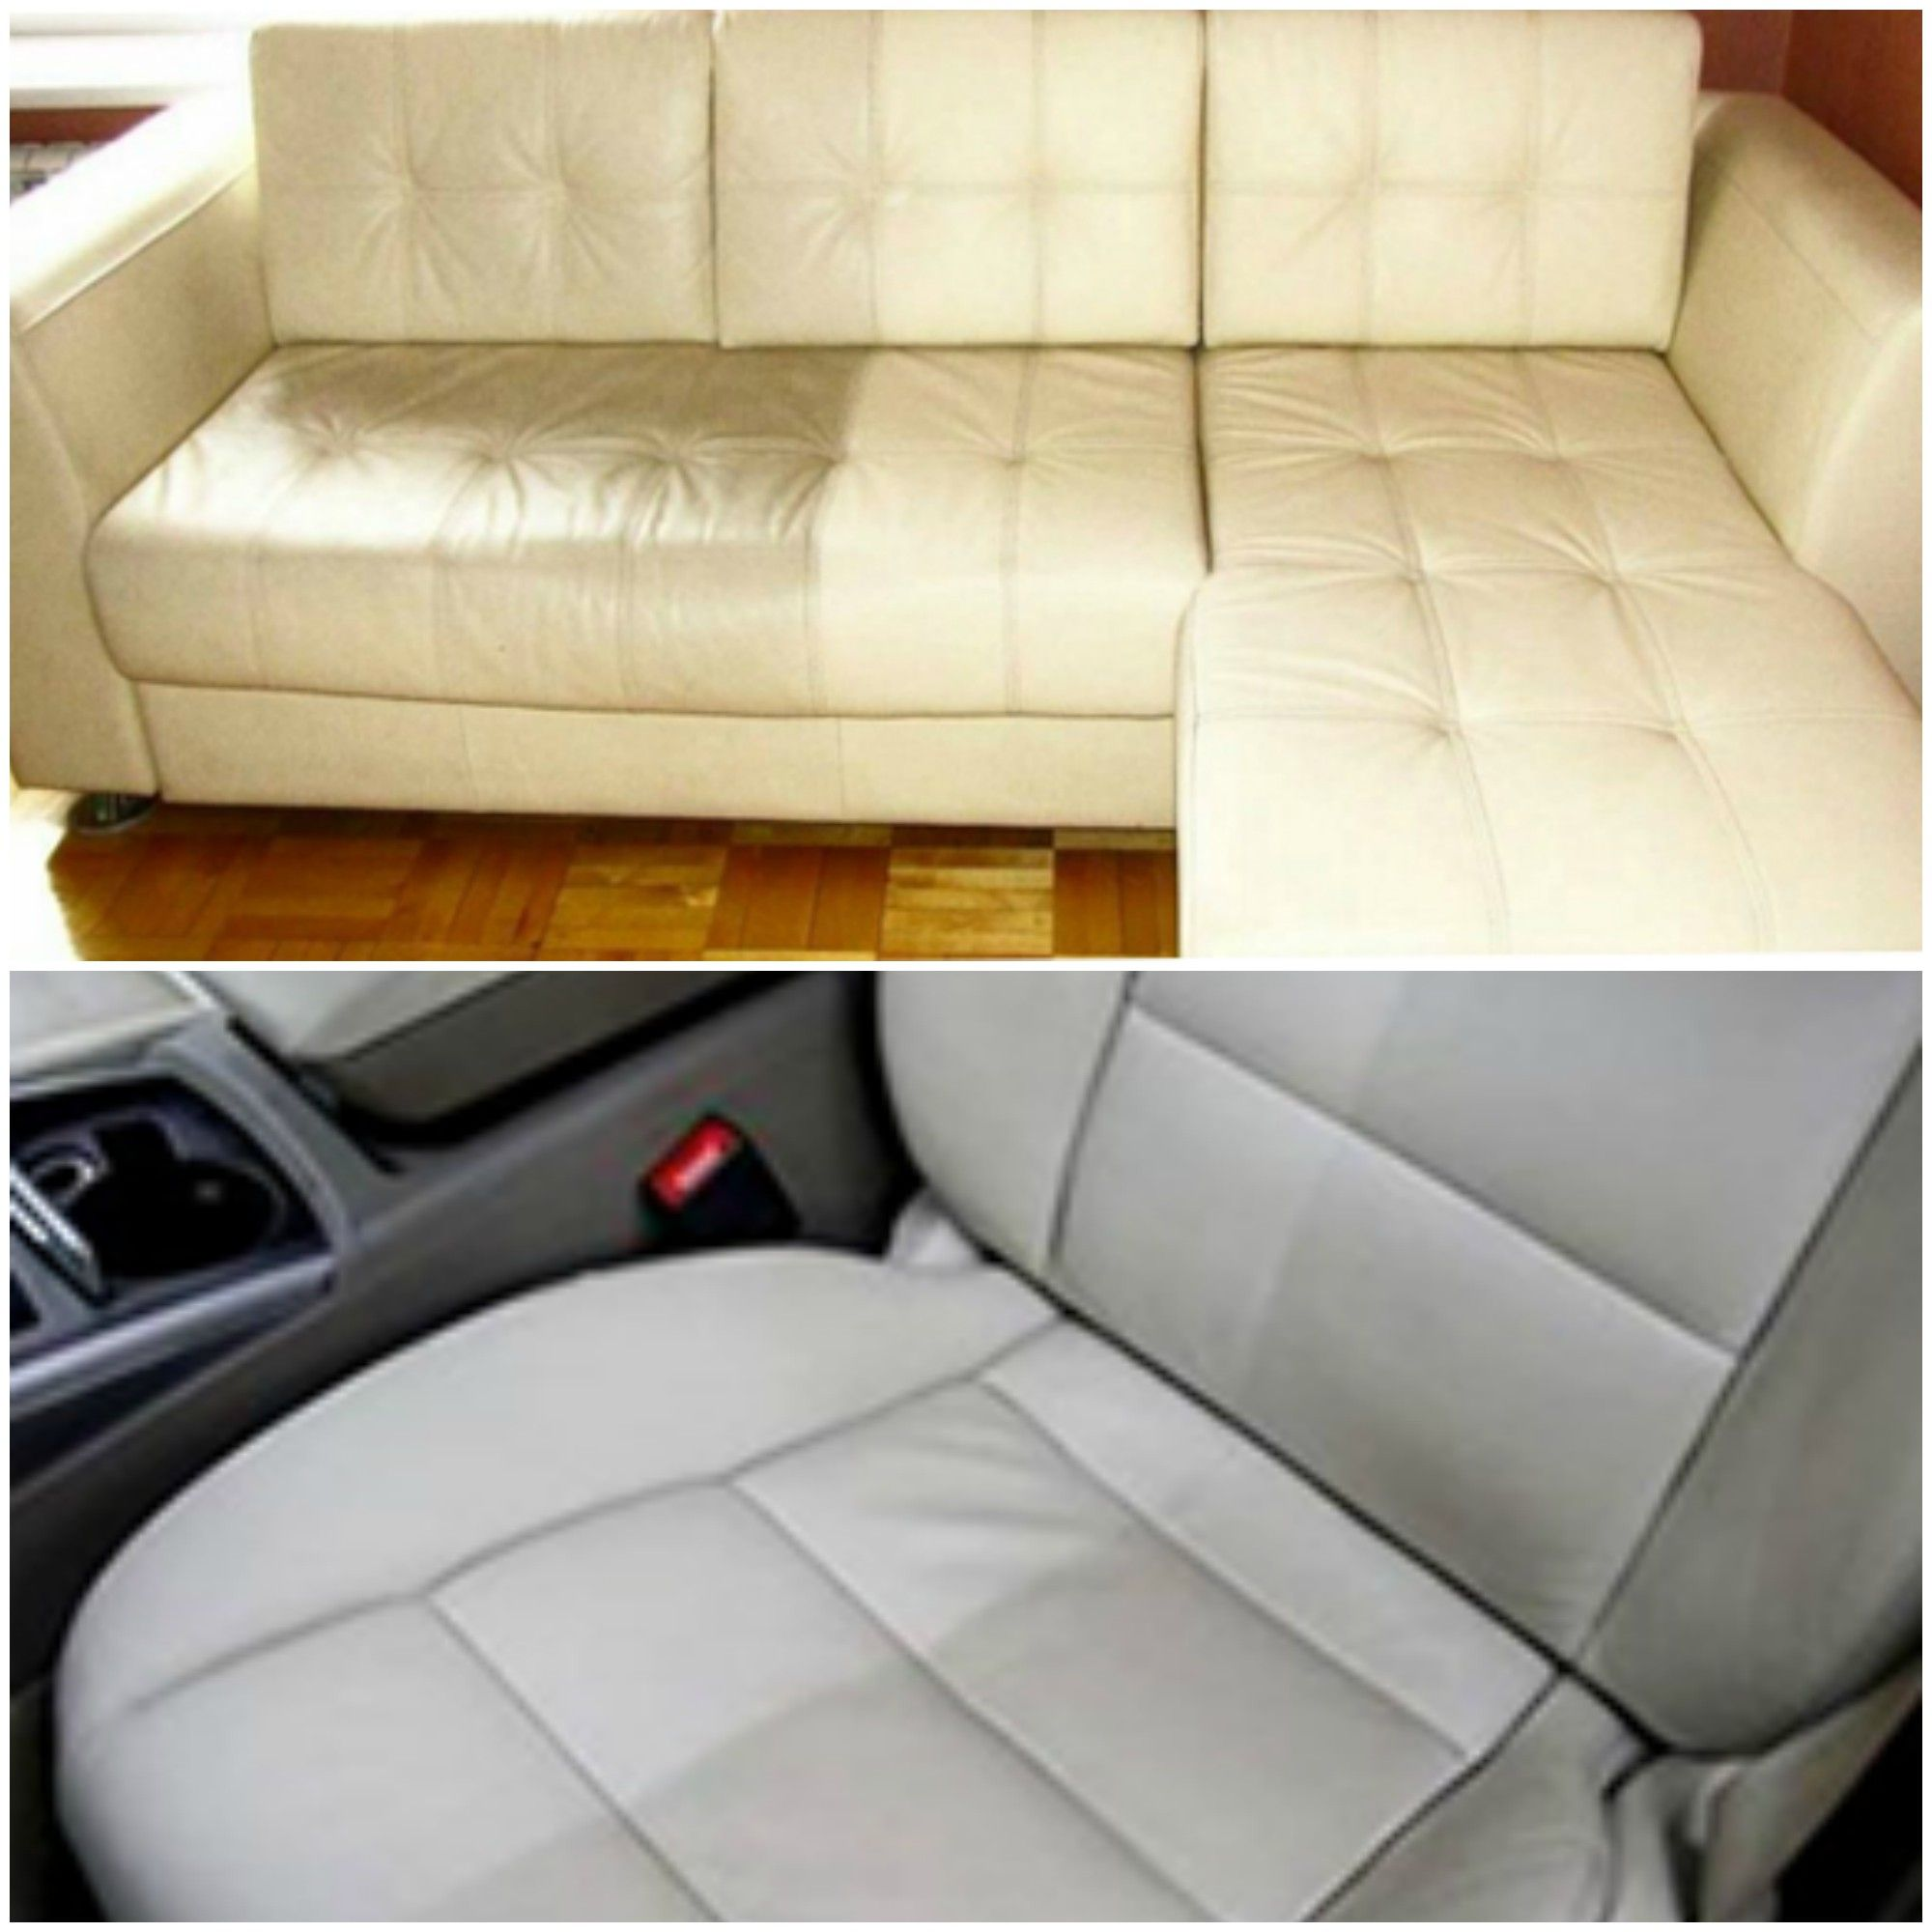 White Leather Sofa Maintenance: Tips And Guides For Leather Repair